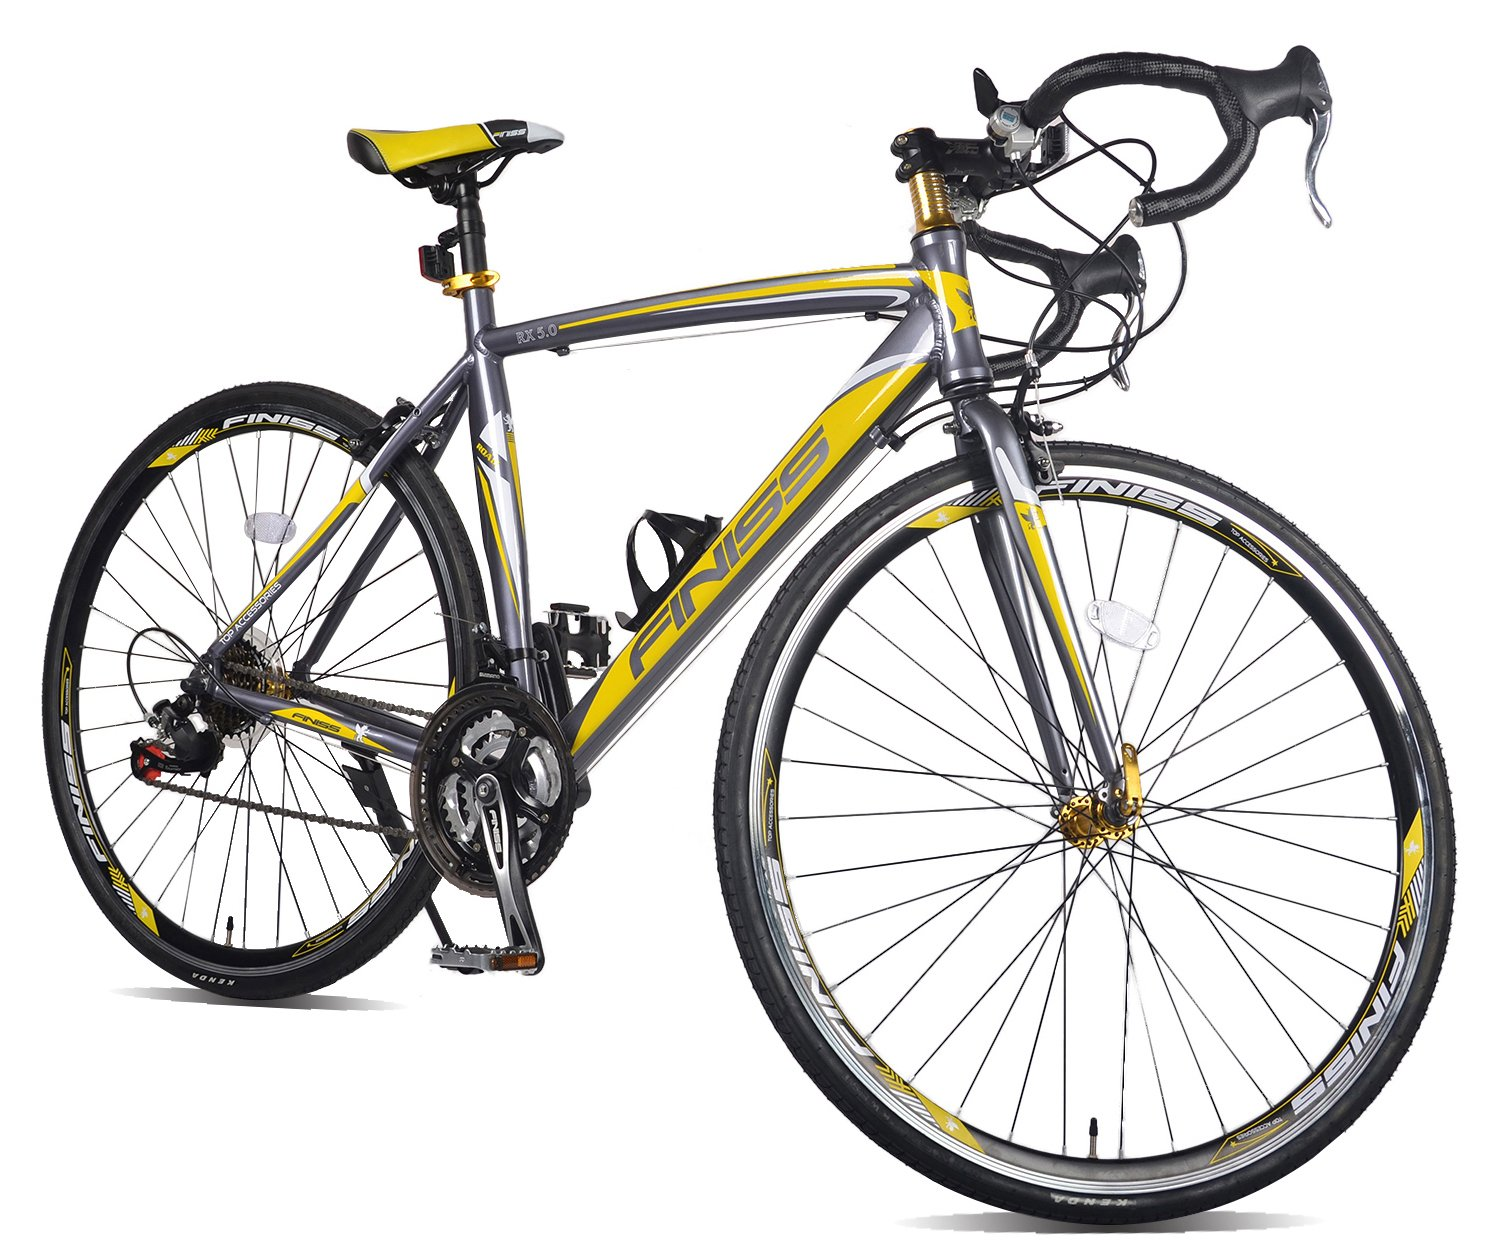 Merax Finiss Aluminum 21 Speed 700C Road Bike